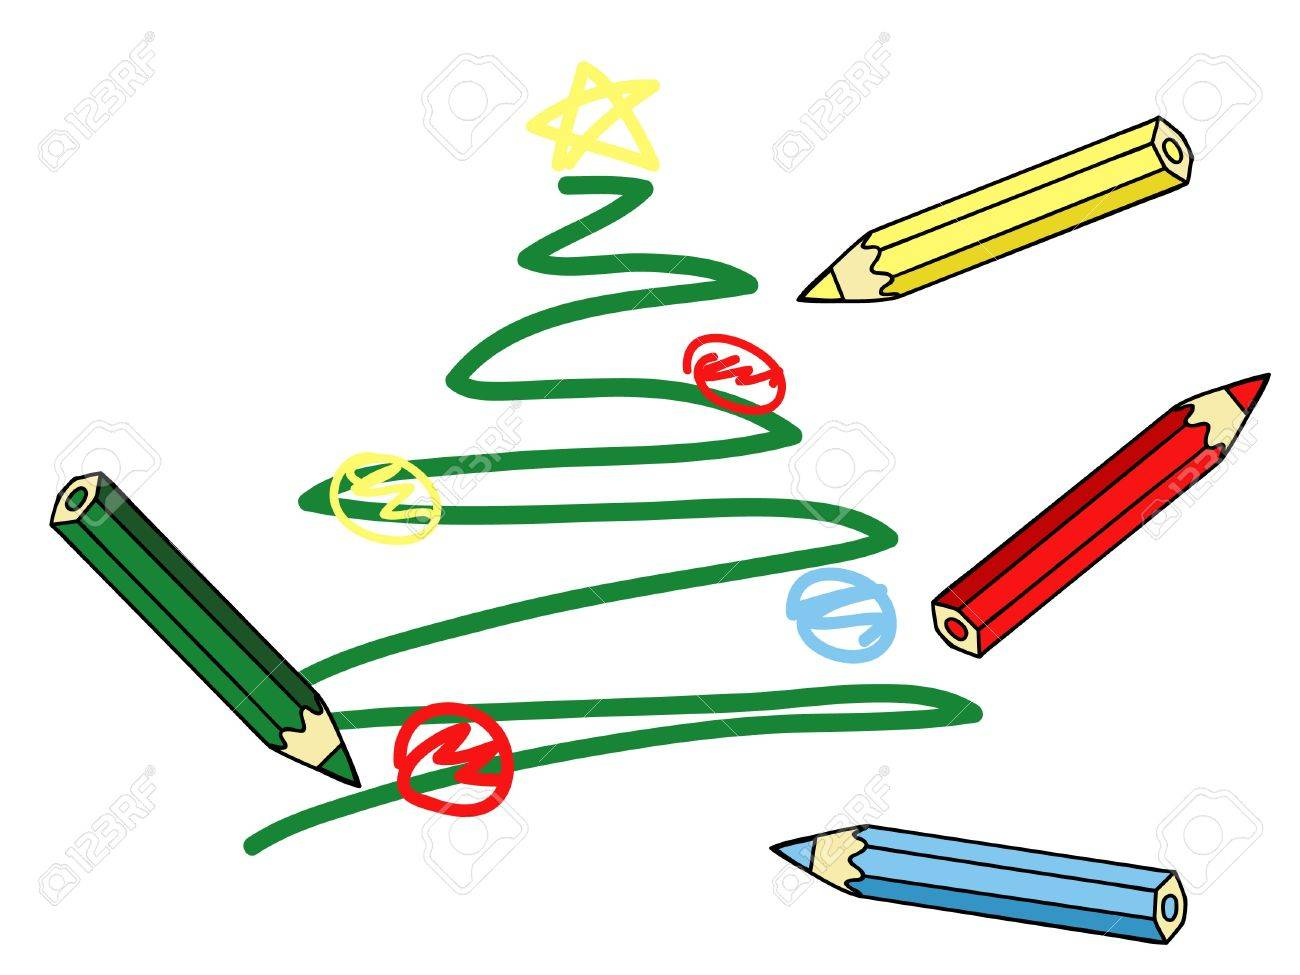 a child�s Christmas tree drawing and colorful pencils vector illustration Stock Vector - 16849009